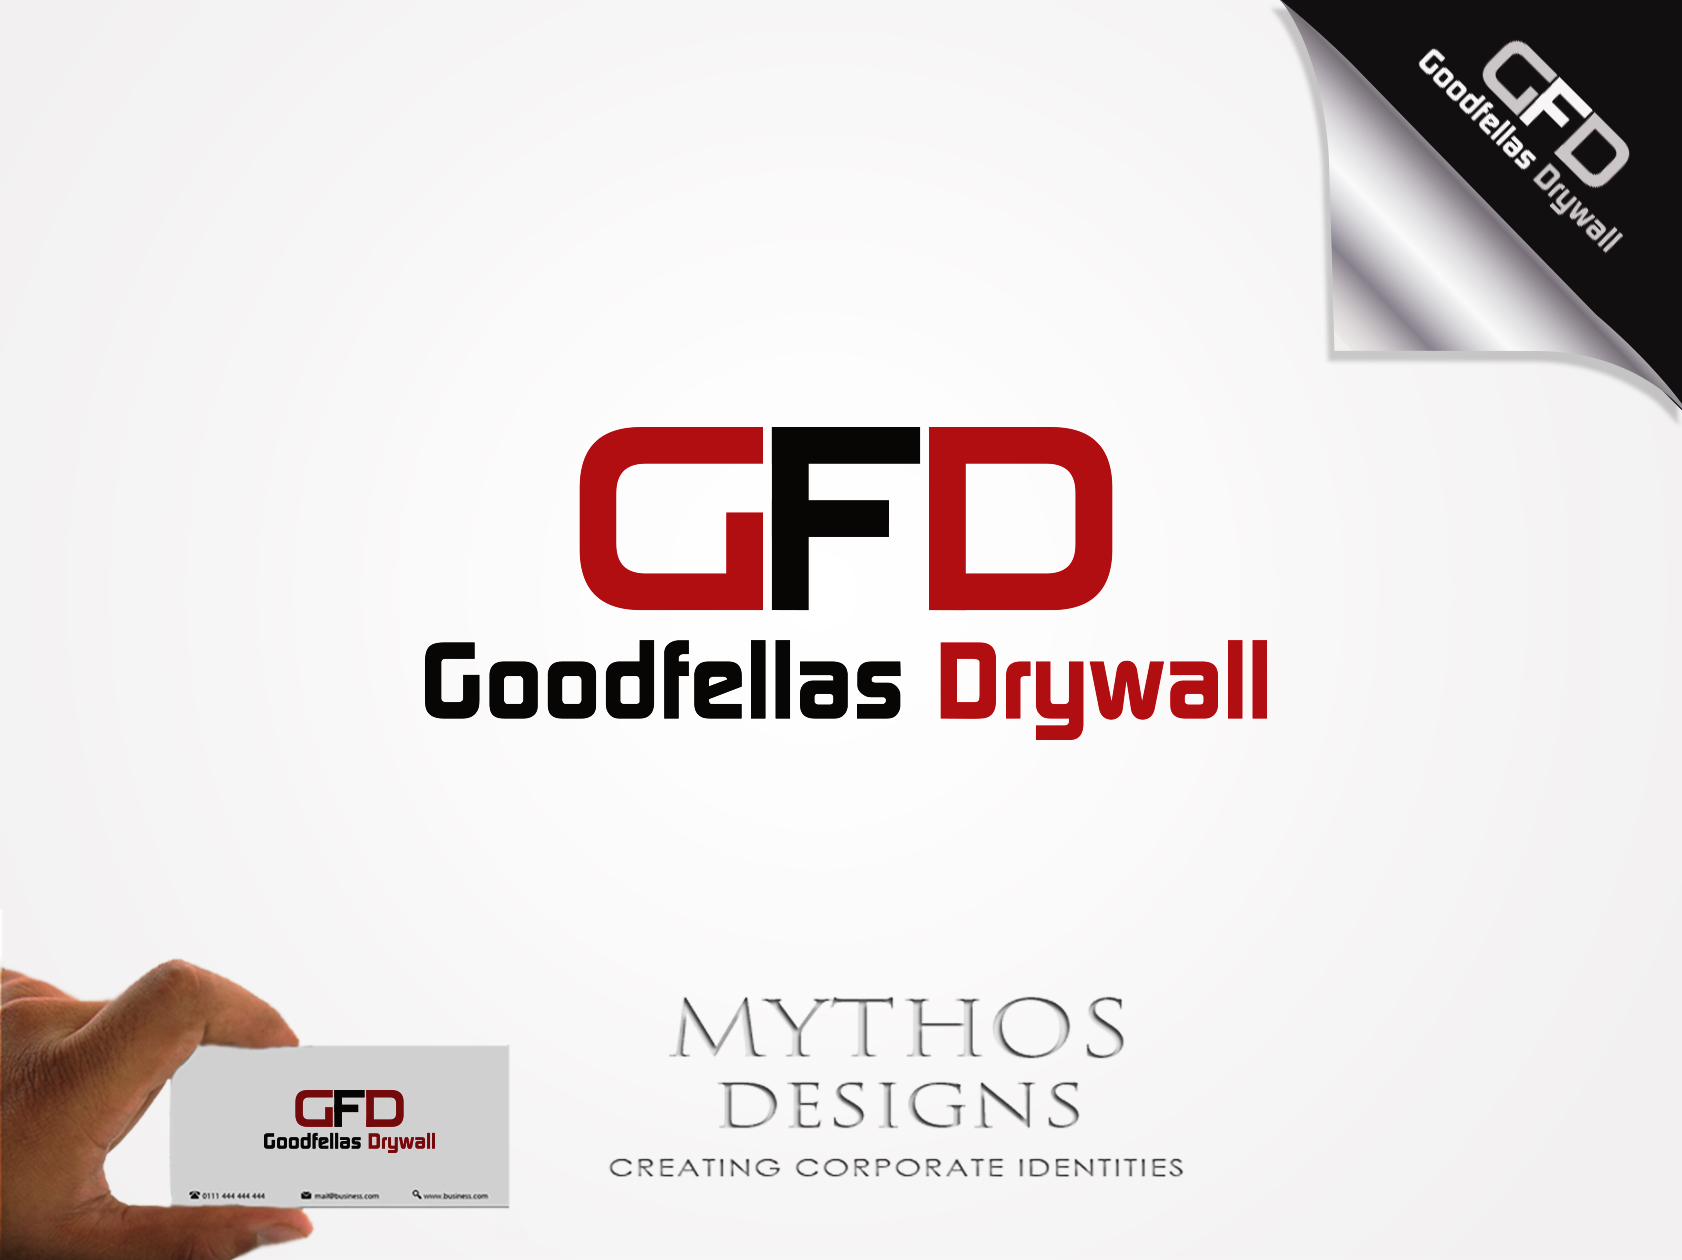 Logo Design by Mythos Designs - Entry No. 82 in the Logo Design Contest Creative Logo Design for Goodfellas Drywall.